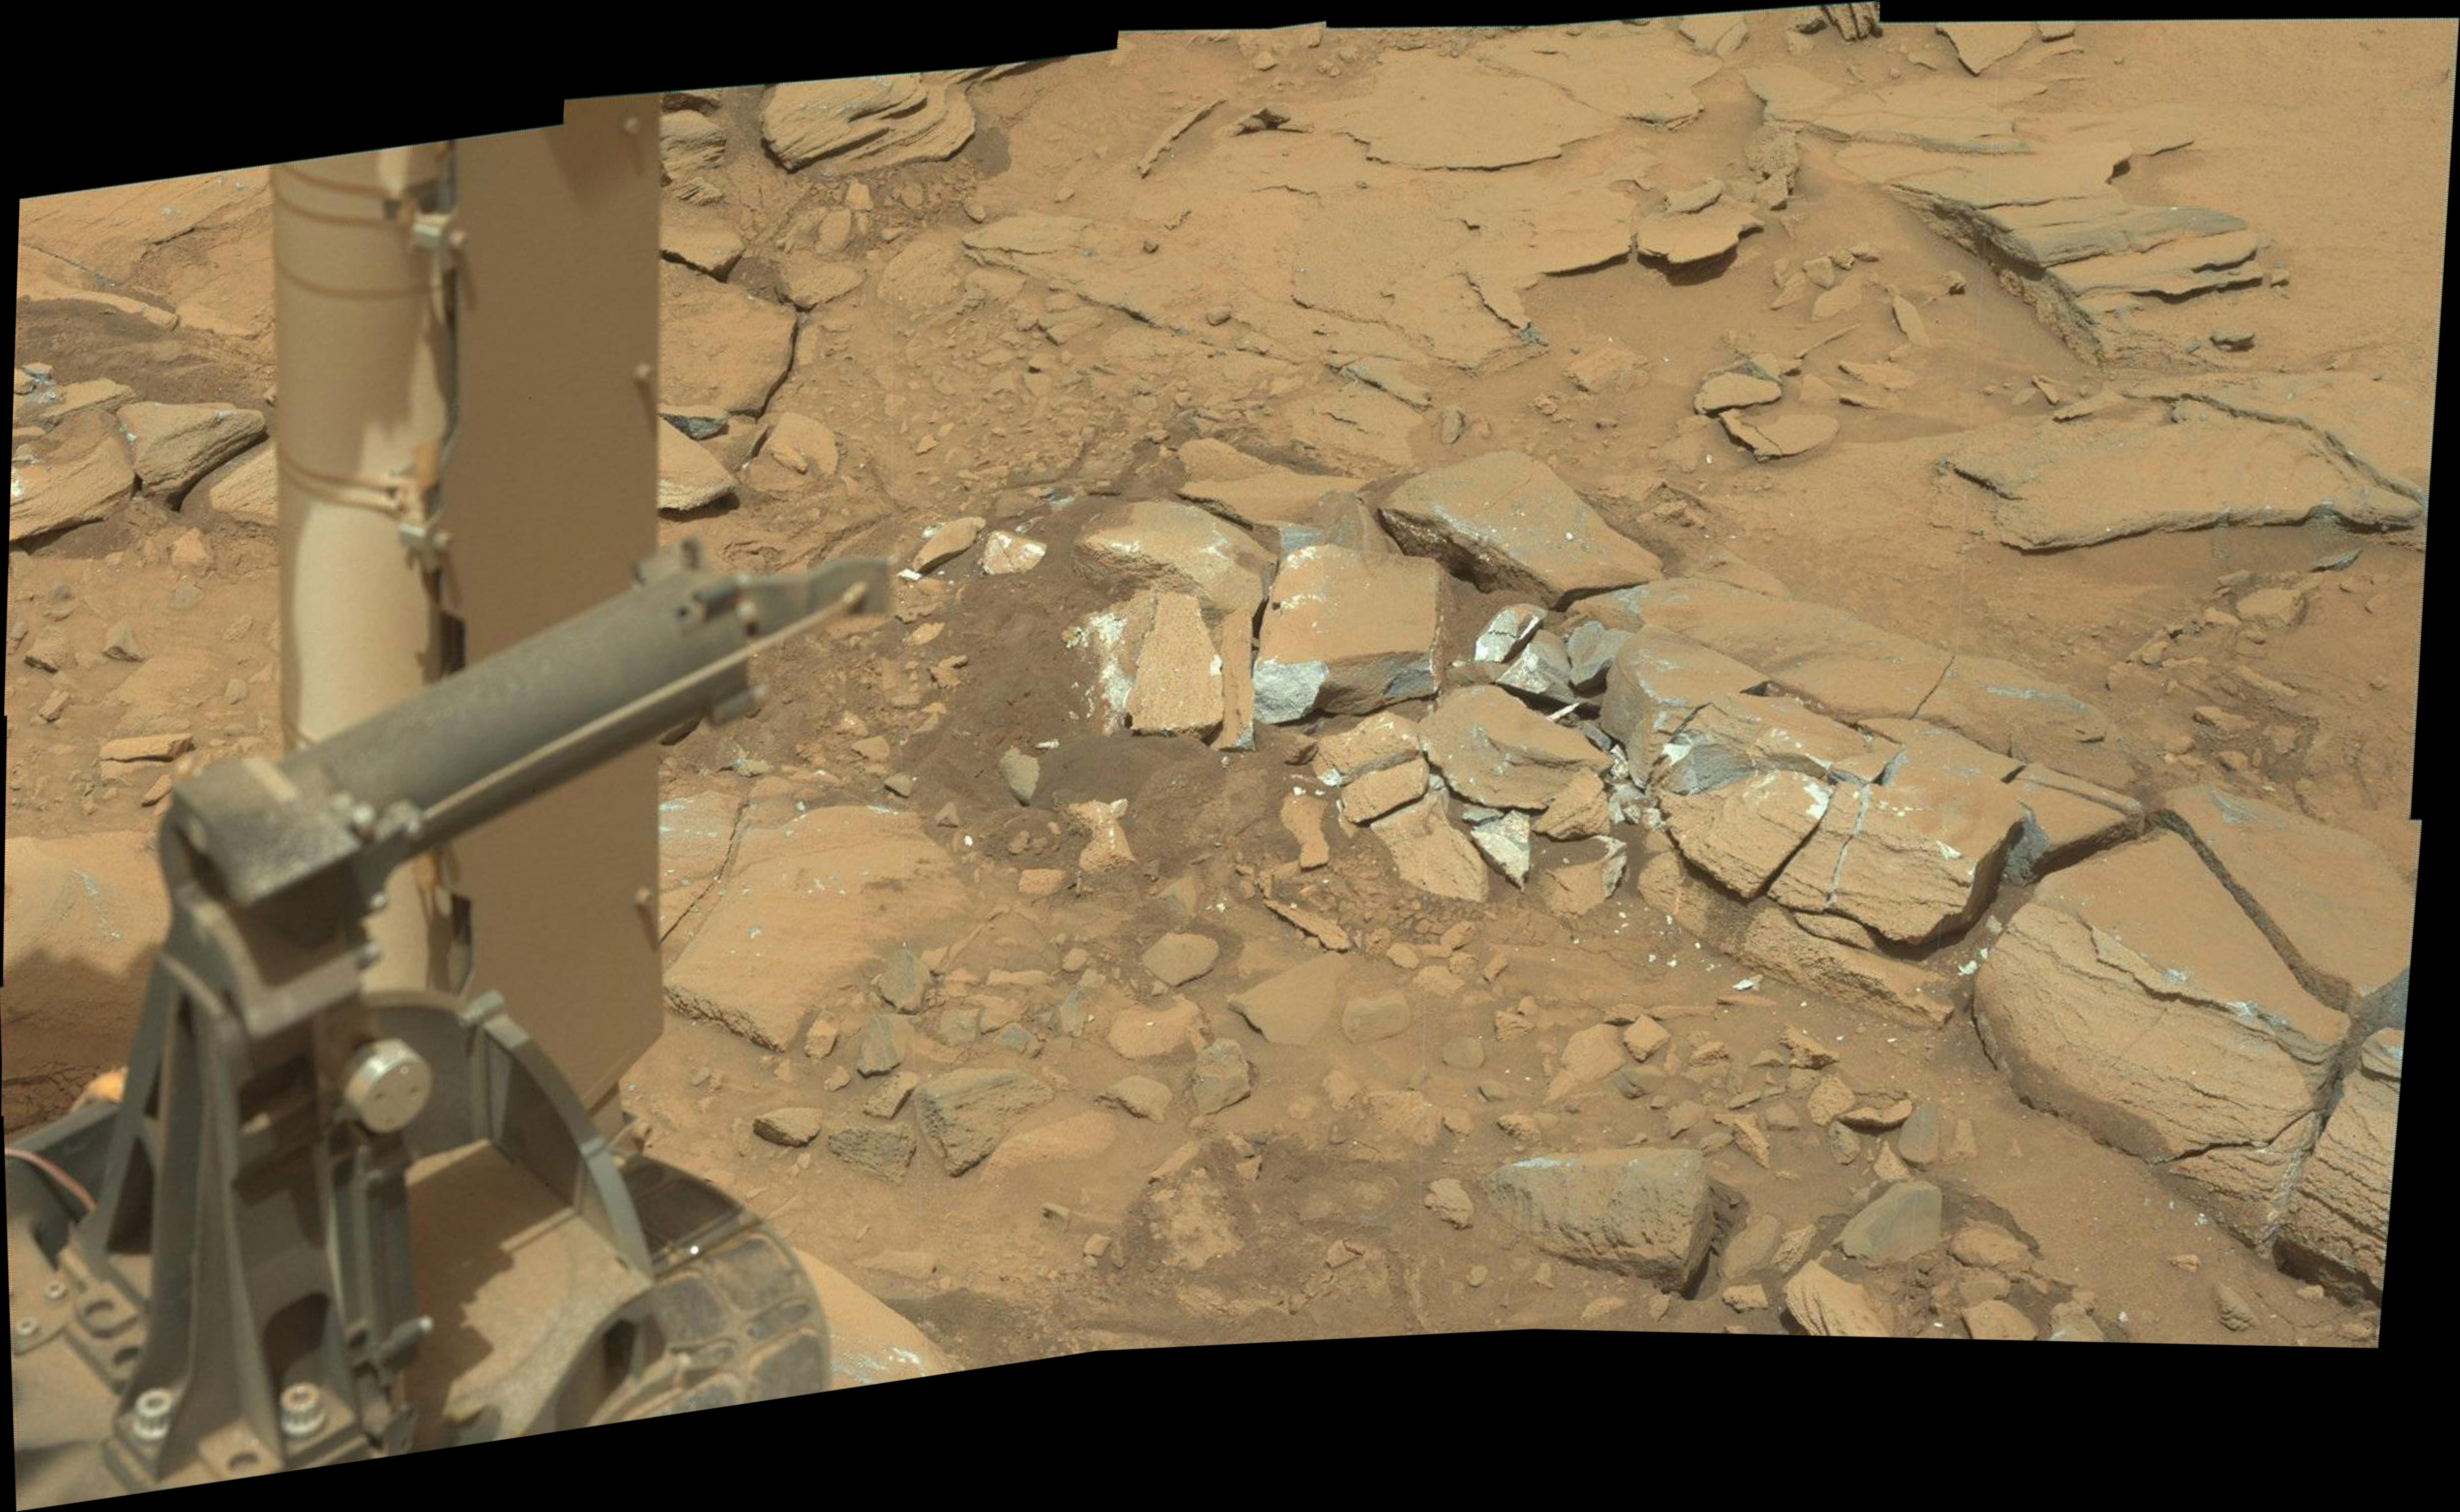 panoramic curiosity rover view 1 - sol 1342 - was life on mars